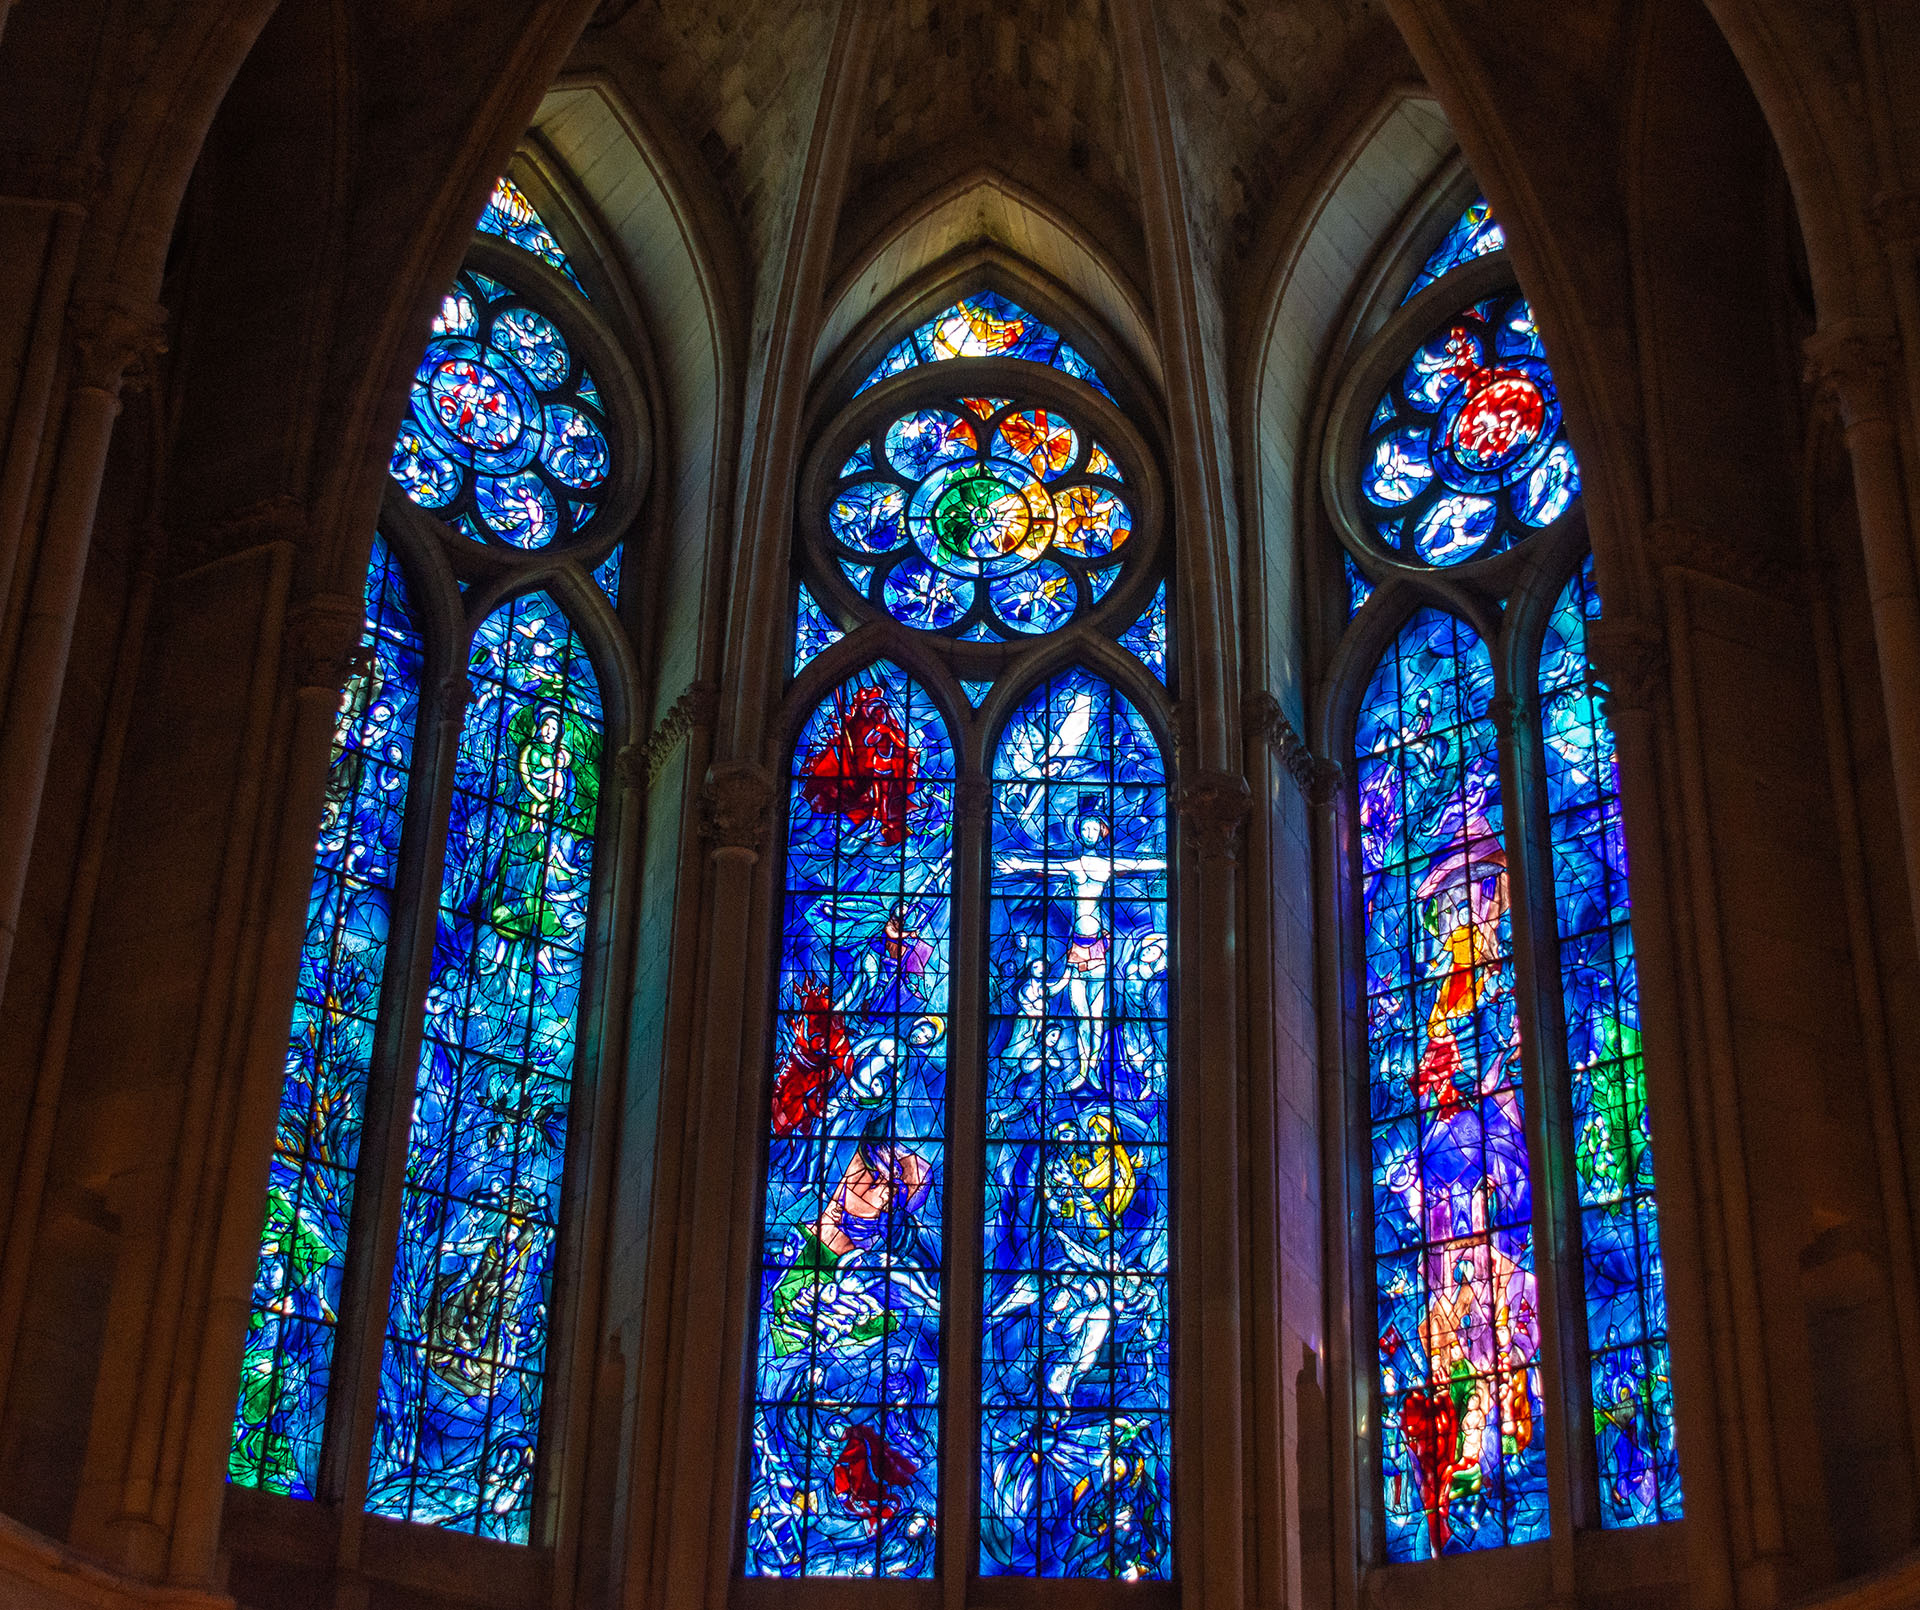 Stained glass windows by Marc Chagall in Notre-Dame de Reims, completed in 1974 and replacing some of those destroyed during the Great War